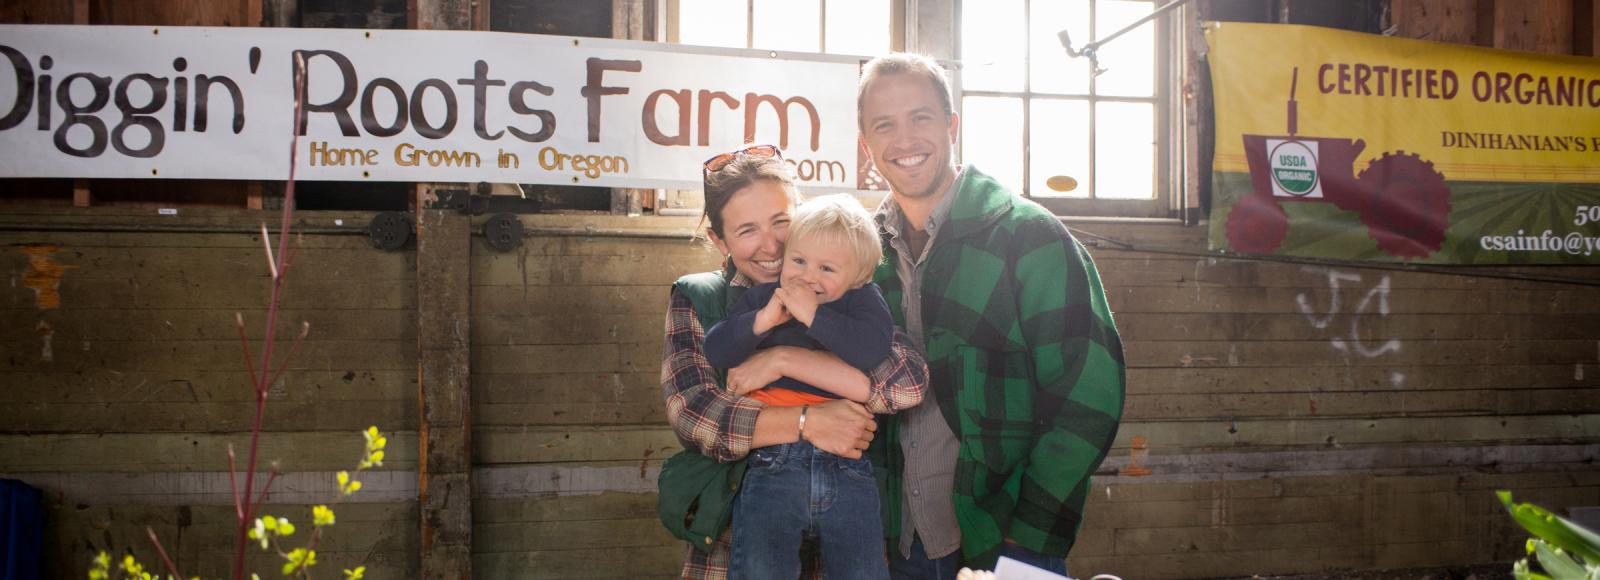 Conner Dell, Sarah Rose, and their son Wendell of Diggin' Roots Farm.